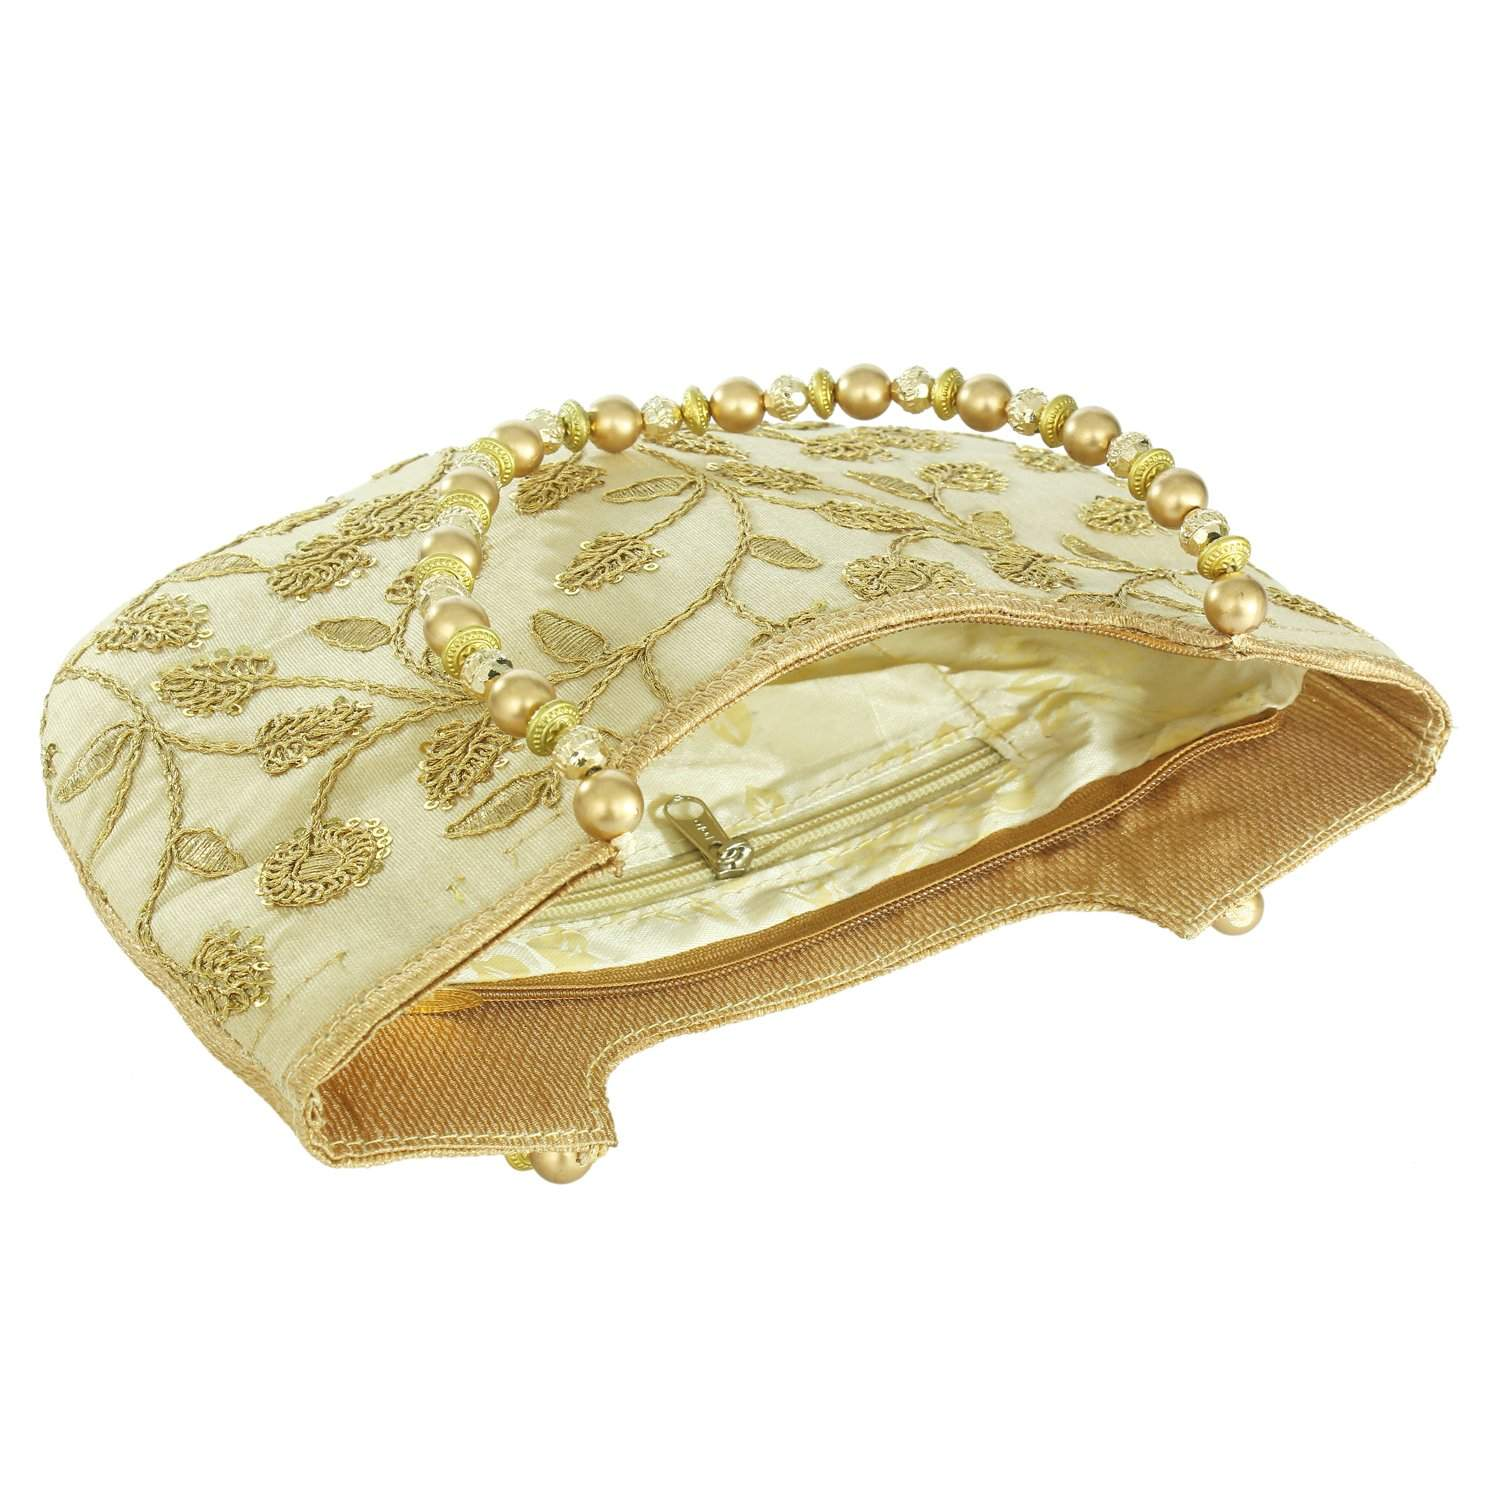 Ethnic Silk Hand Bag with Embroidery Work (Gold) - Bagaholics Gift